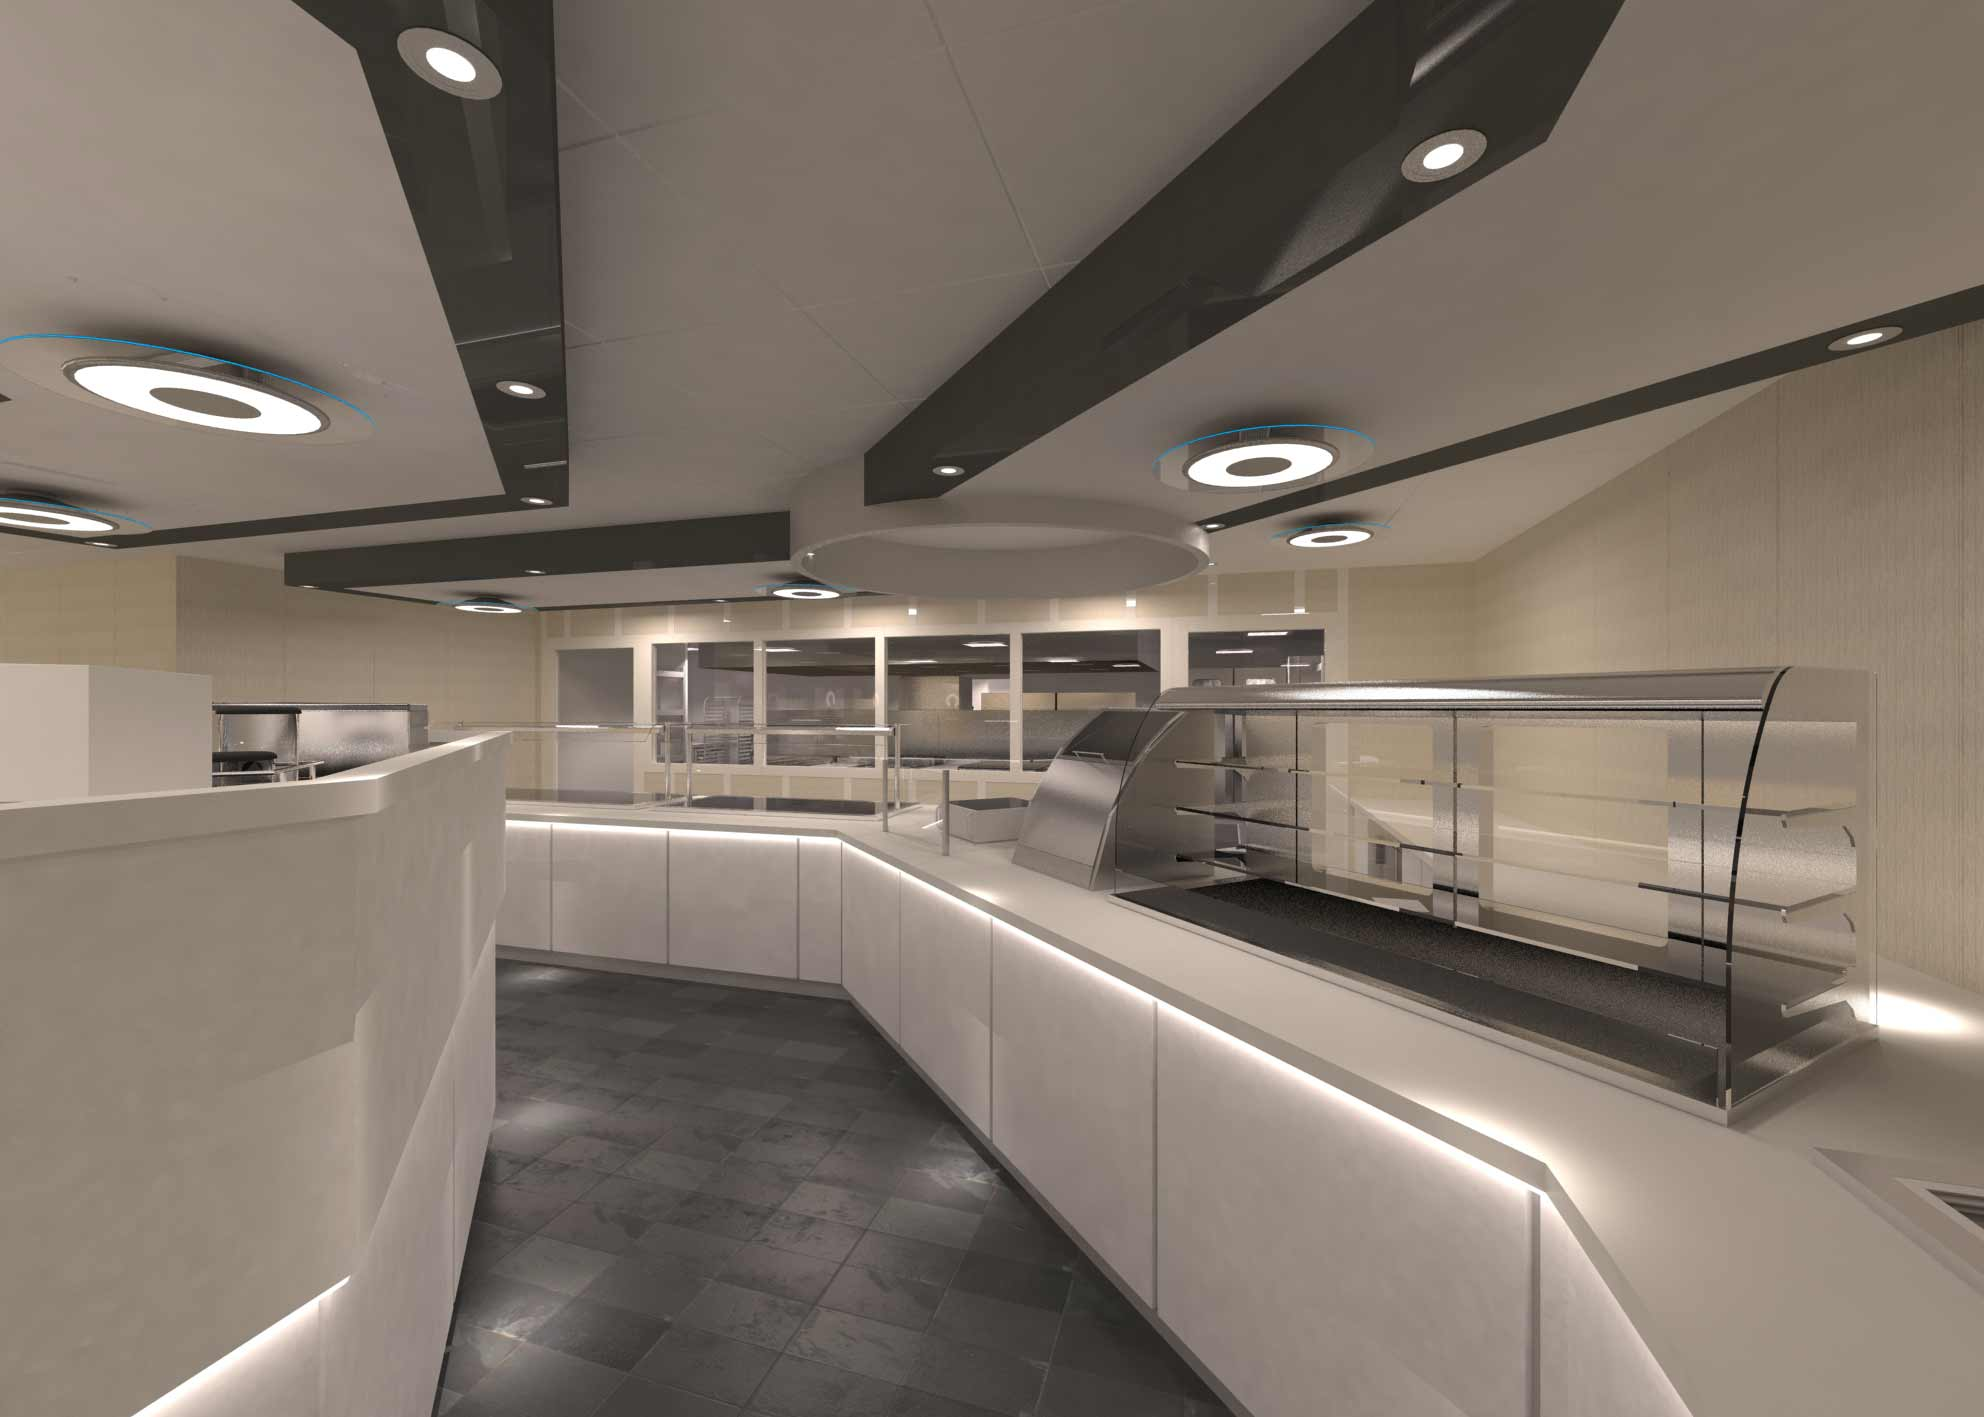 Golden Eagle dining and servery